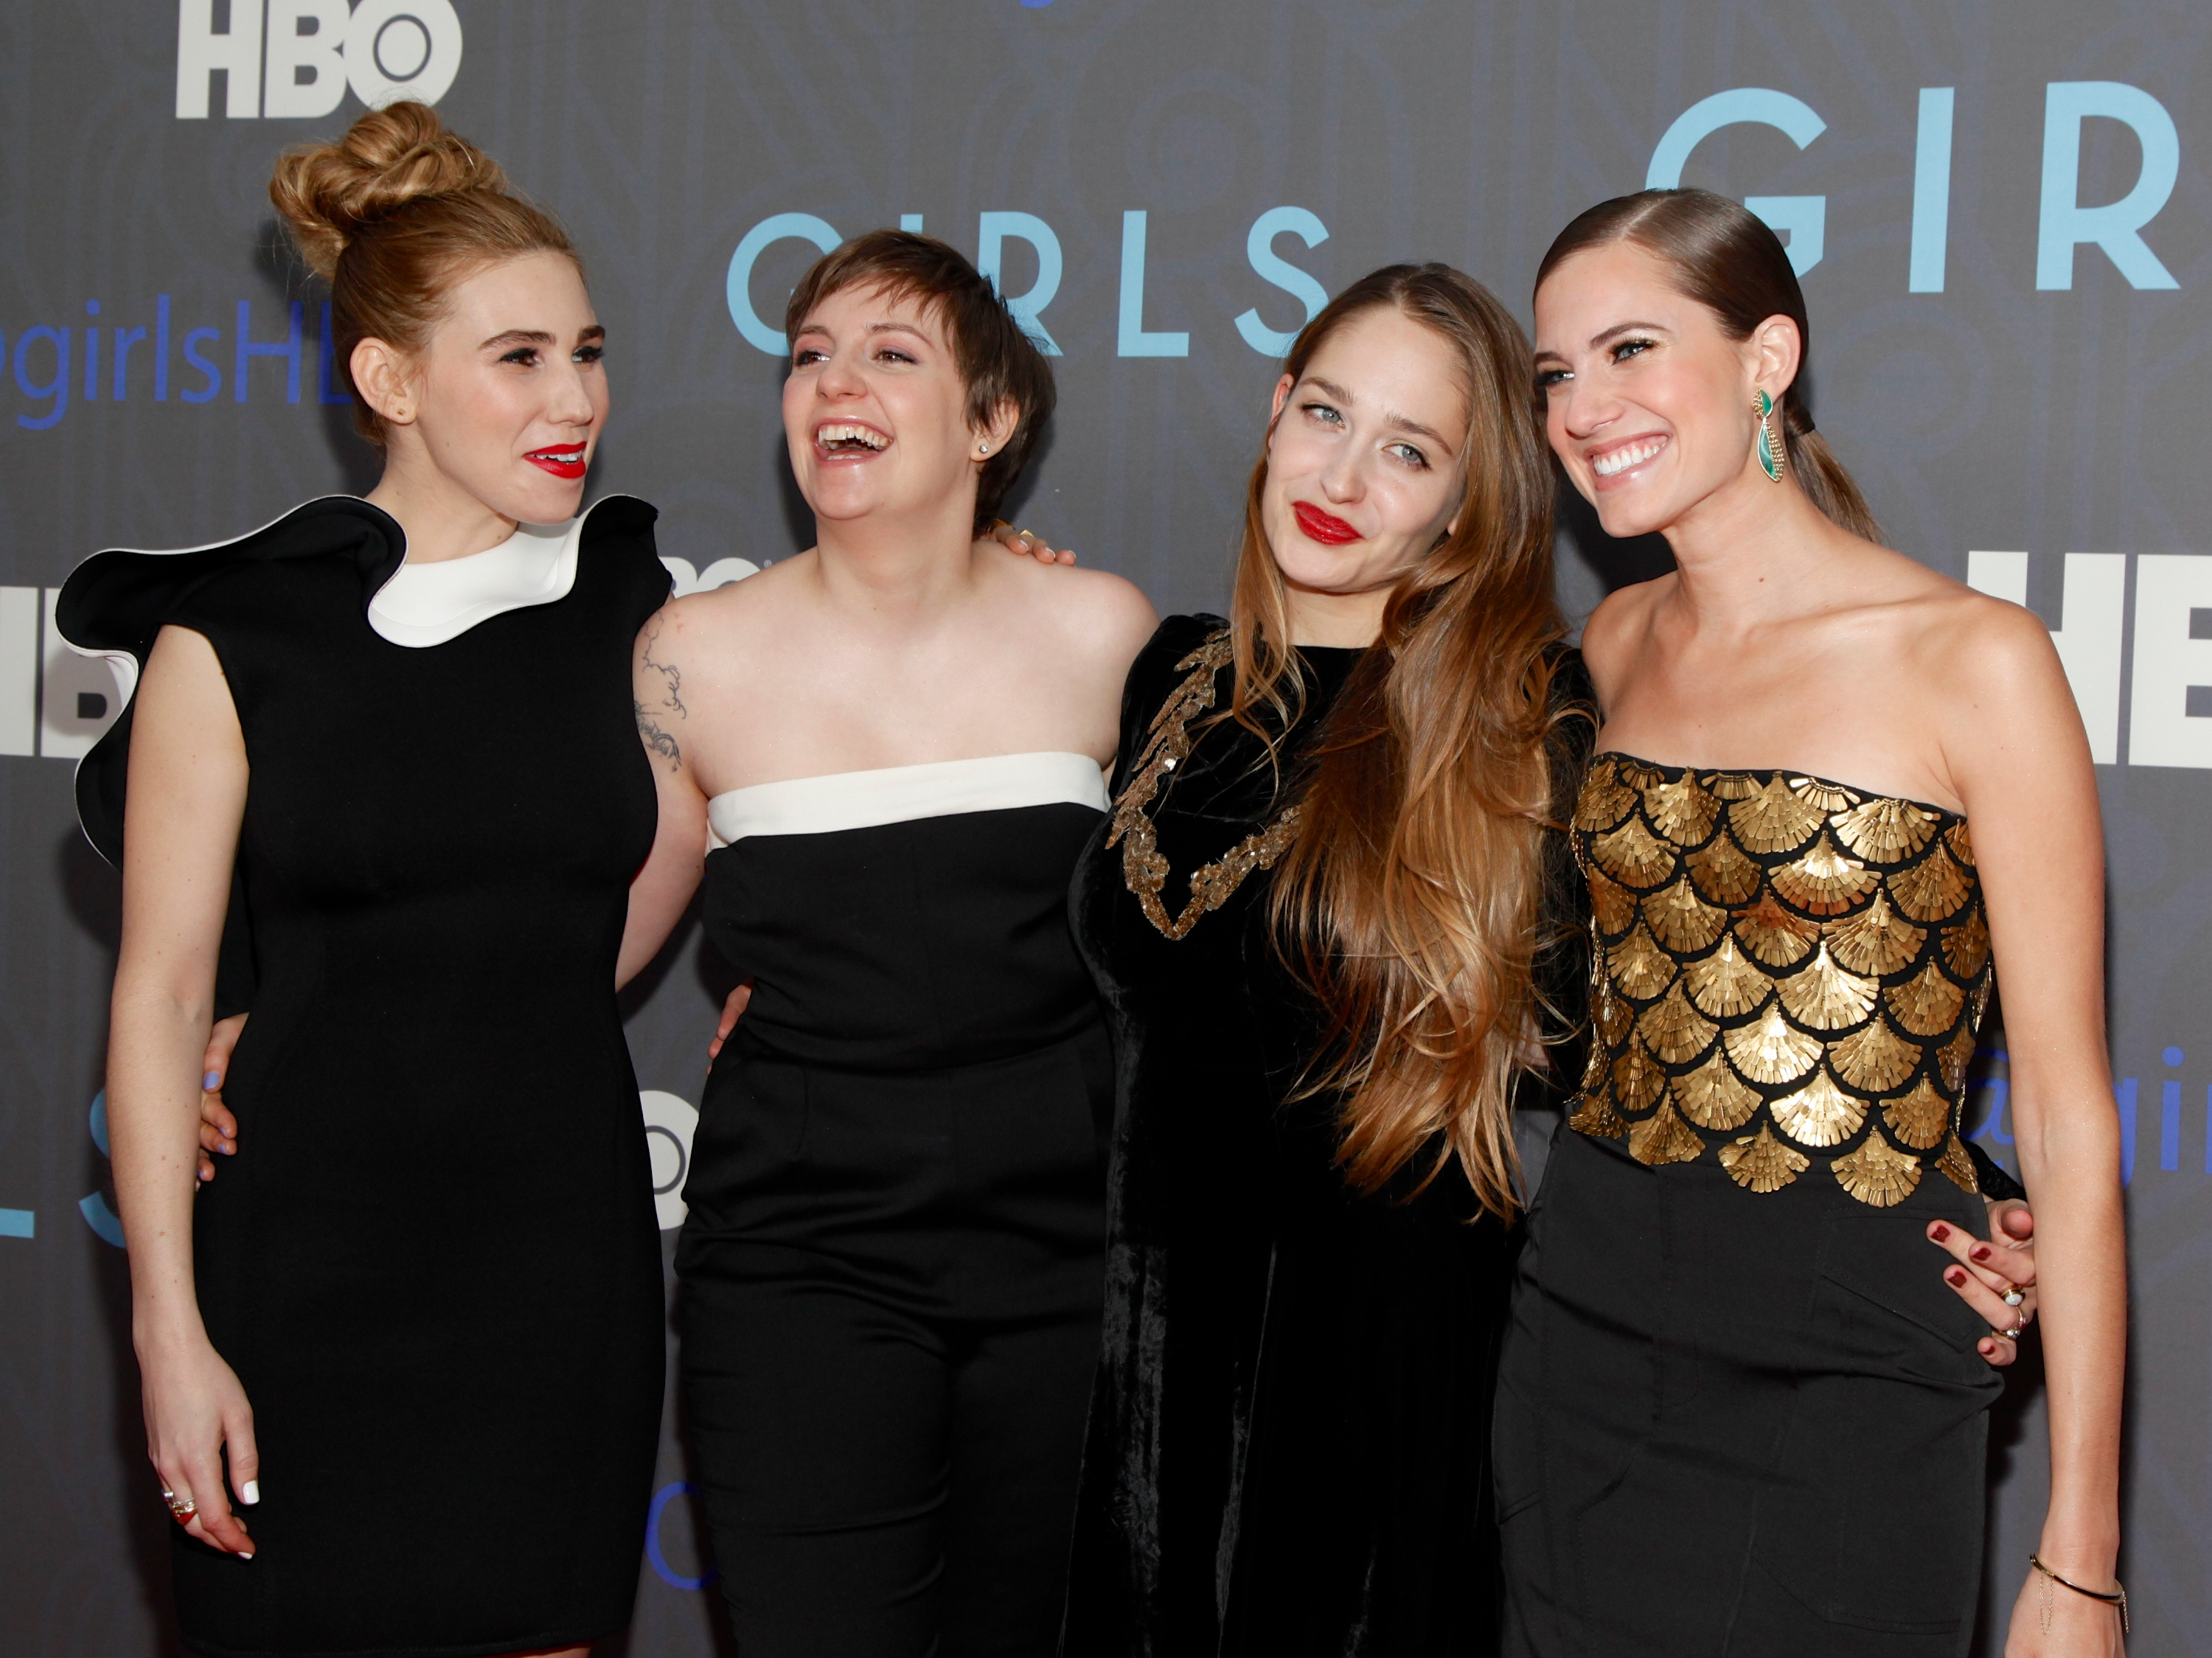 Actresses Zosia Mamet, Jemima Kirke, Allison Williams and creator Lena Dunham attend HBO hosts the premiere of  Girls  Season 2 at the NYU Skirball Center on January 9, 2013 in New York City.